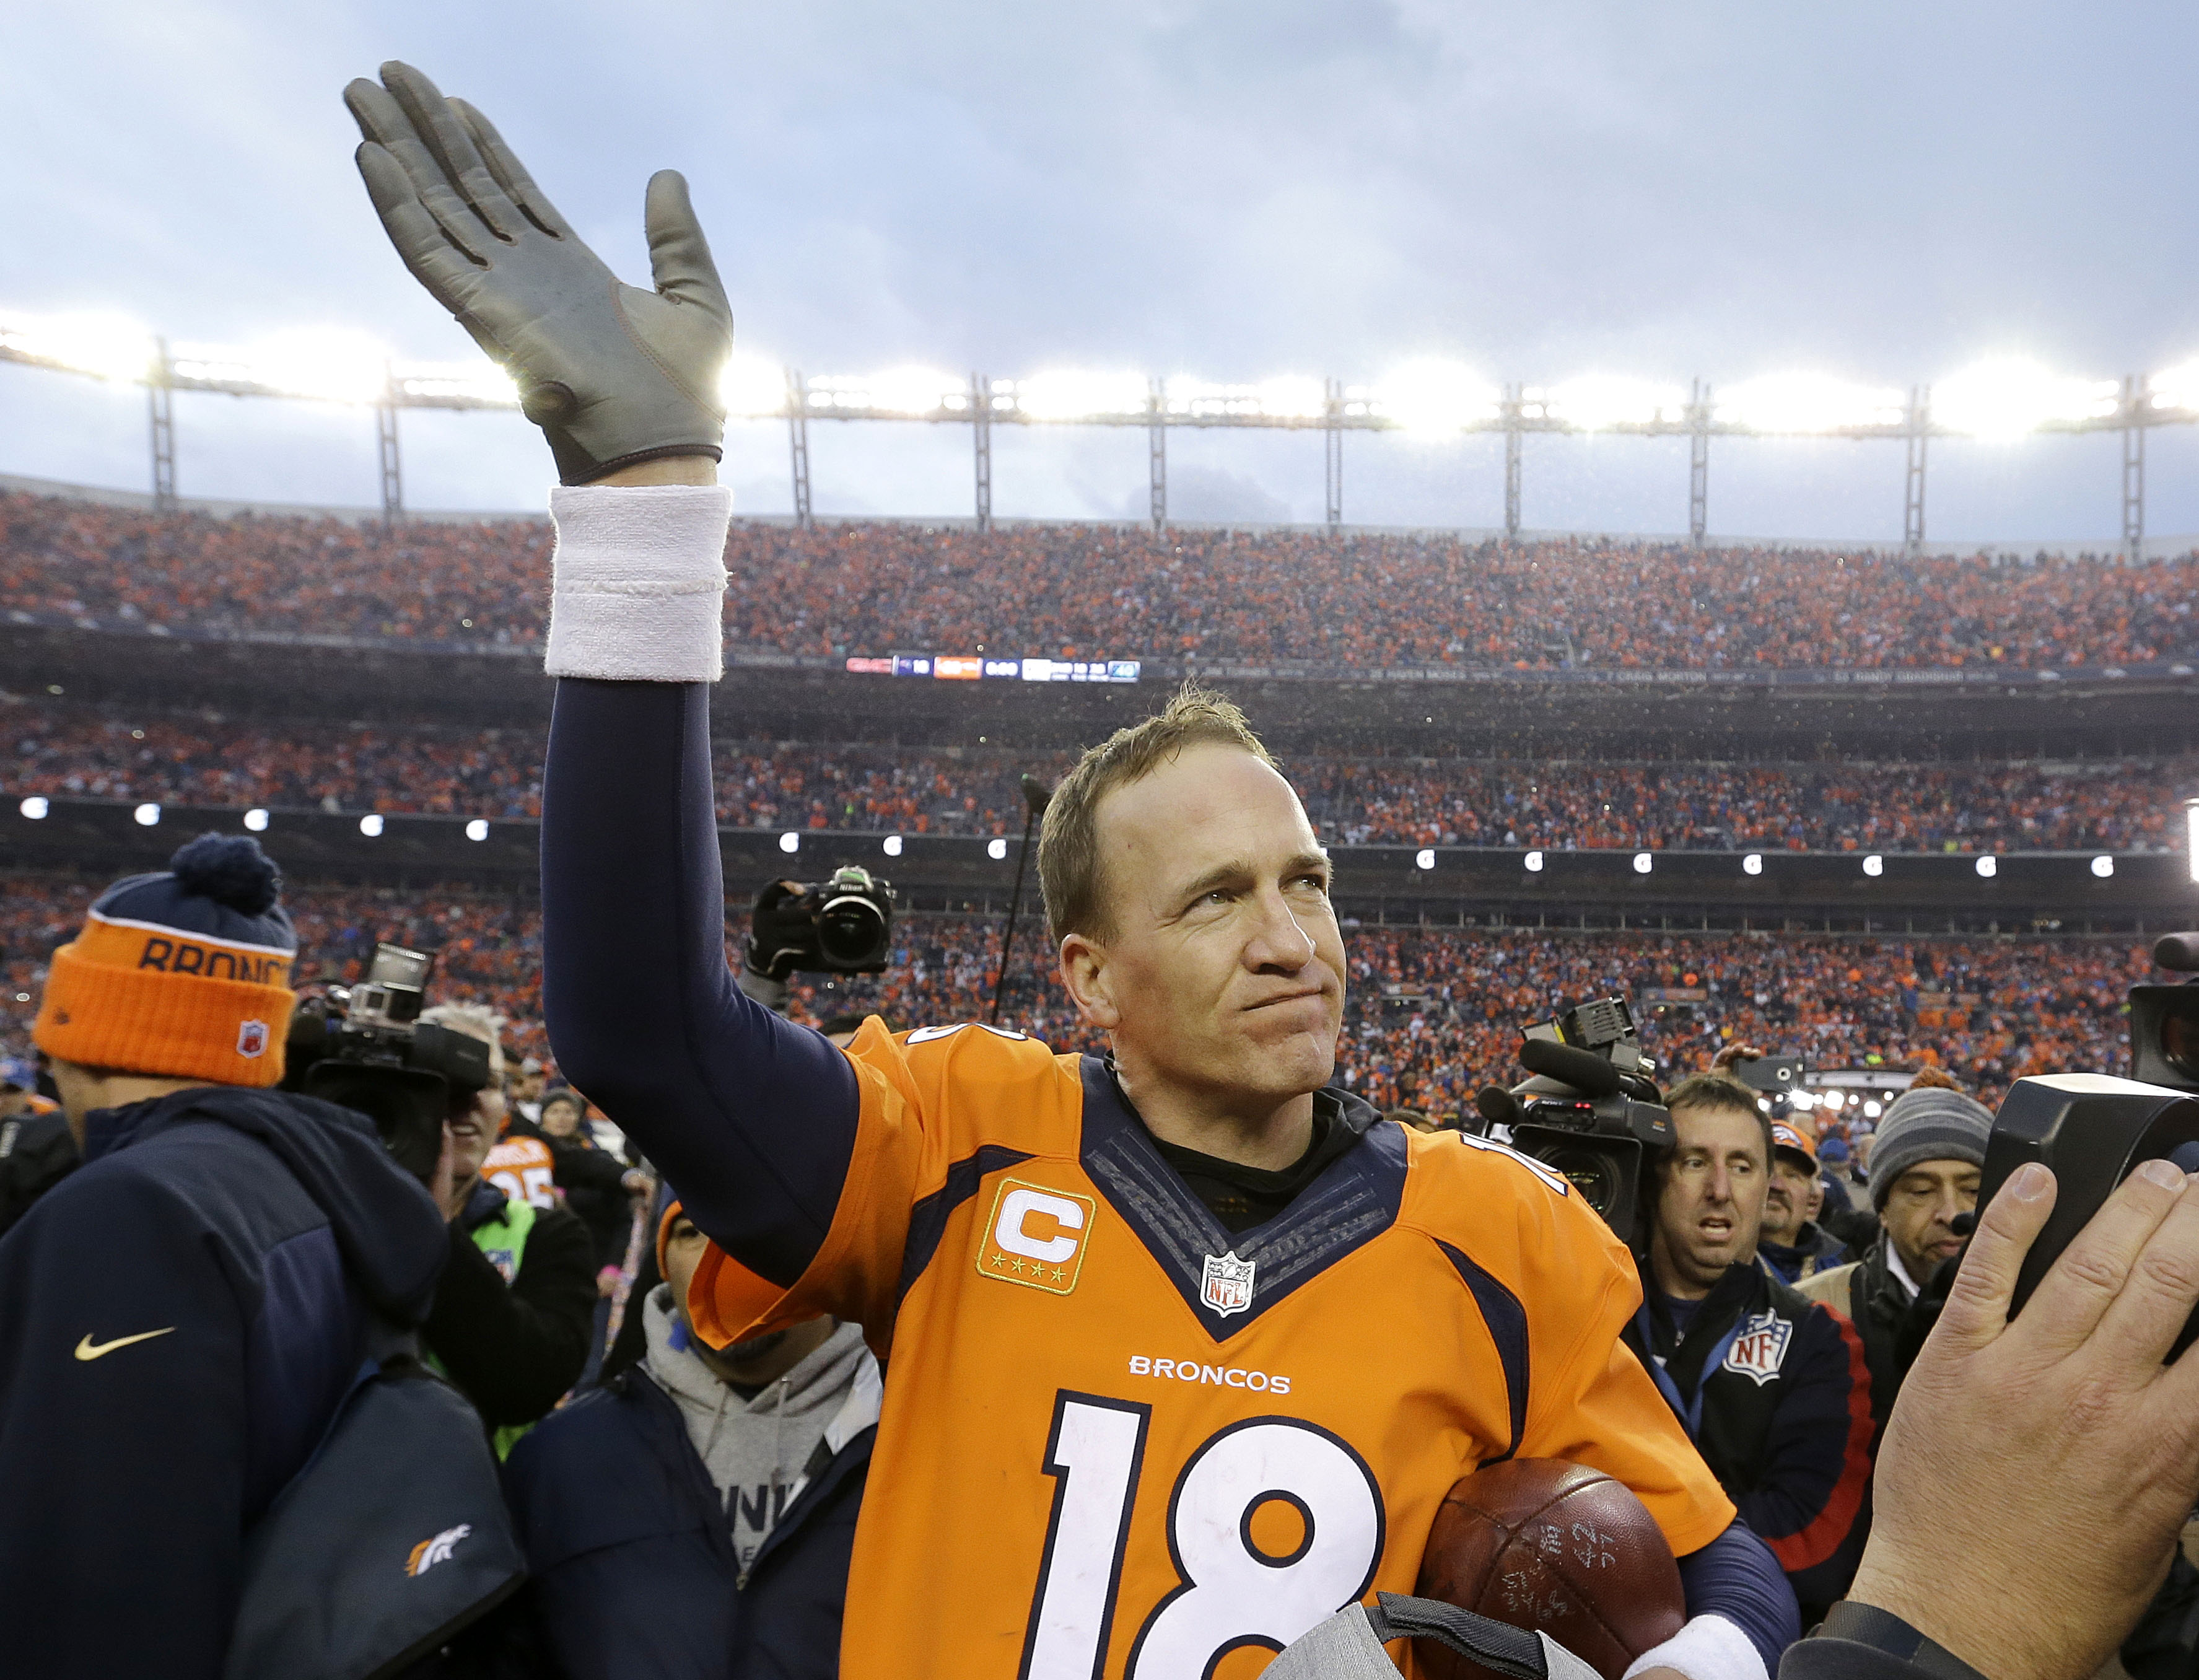 Denver Broncos quarterback Peyton Manning waves to spectators following the AFC Championship game between the Denver Broncos and the New England Patriots, Sunday, Jan. 24, 2016, in Denver. The Broncos defeated the Patriots 20-18 to advance to the Super Bo